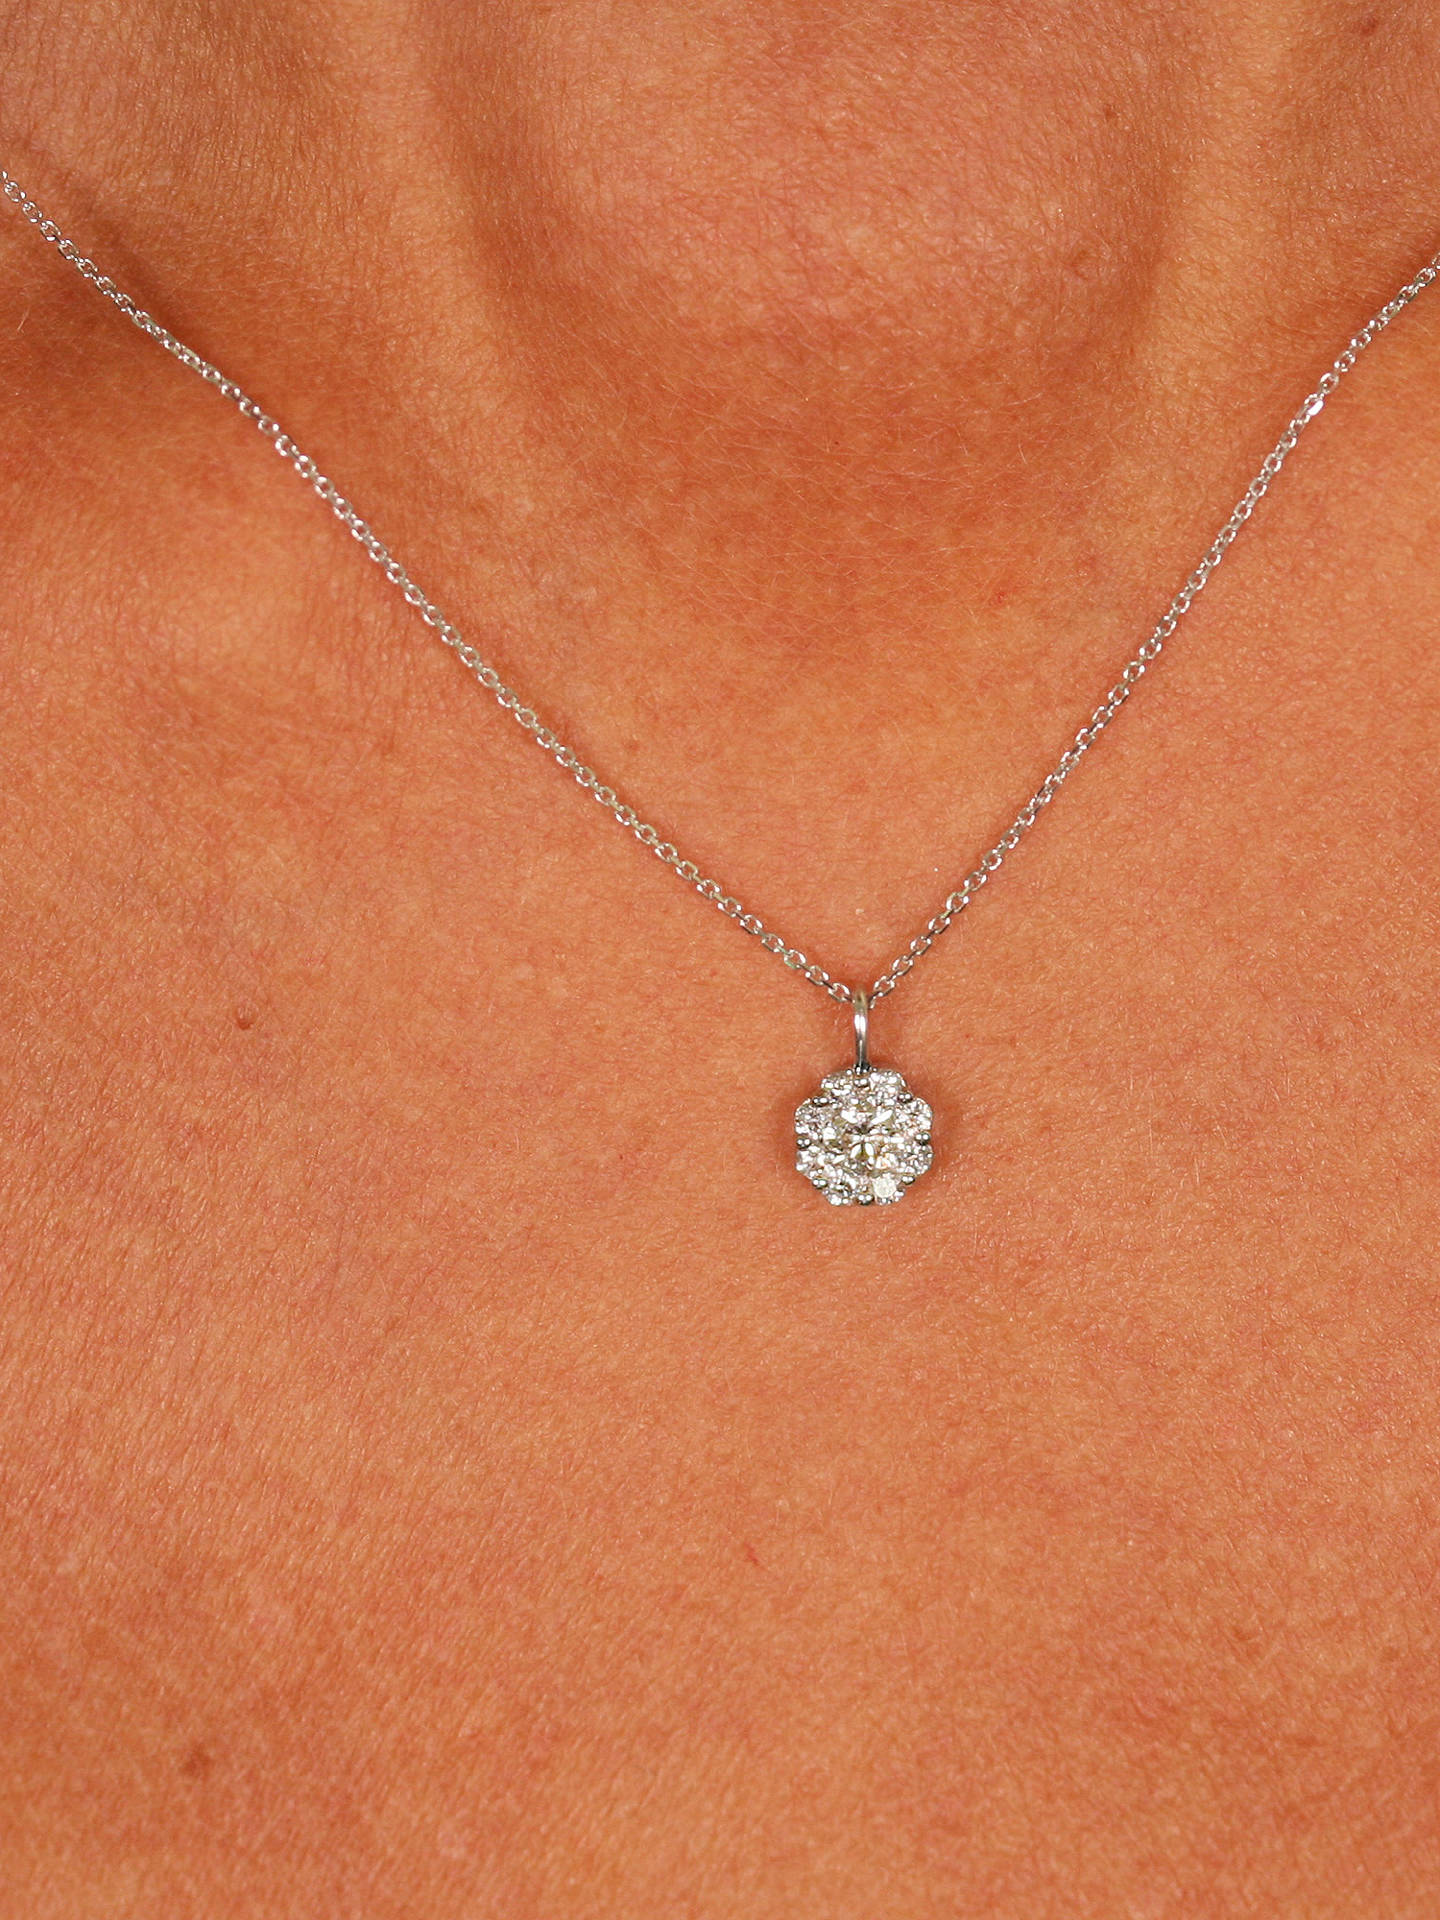 BuyBrown & Newirth 9ct White Gold Diamond Pendant Necklace, 0.30ct Online at johnlewis.com